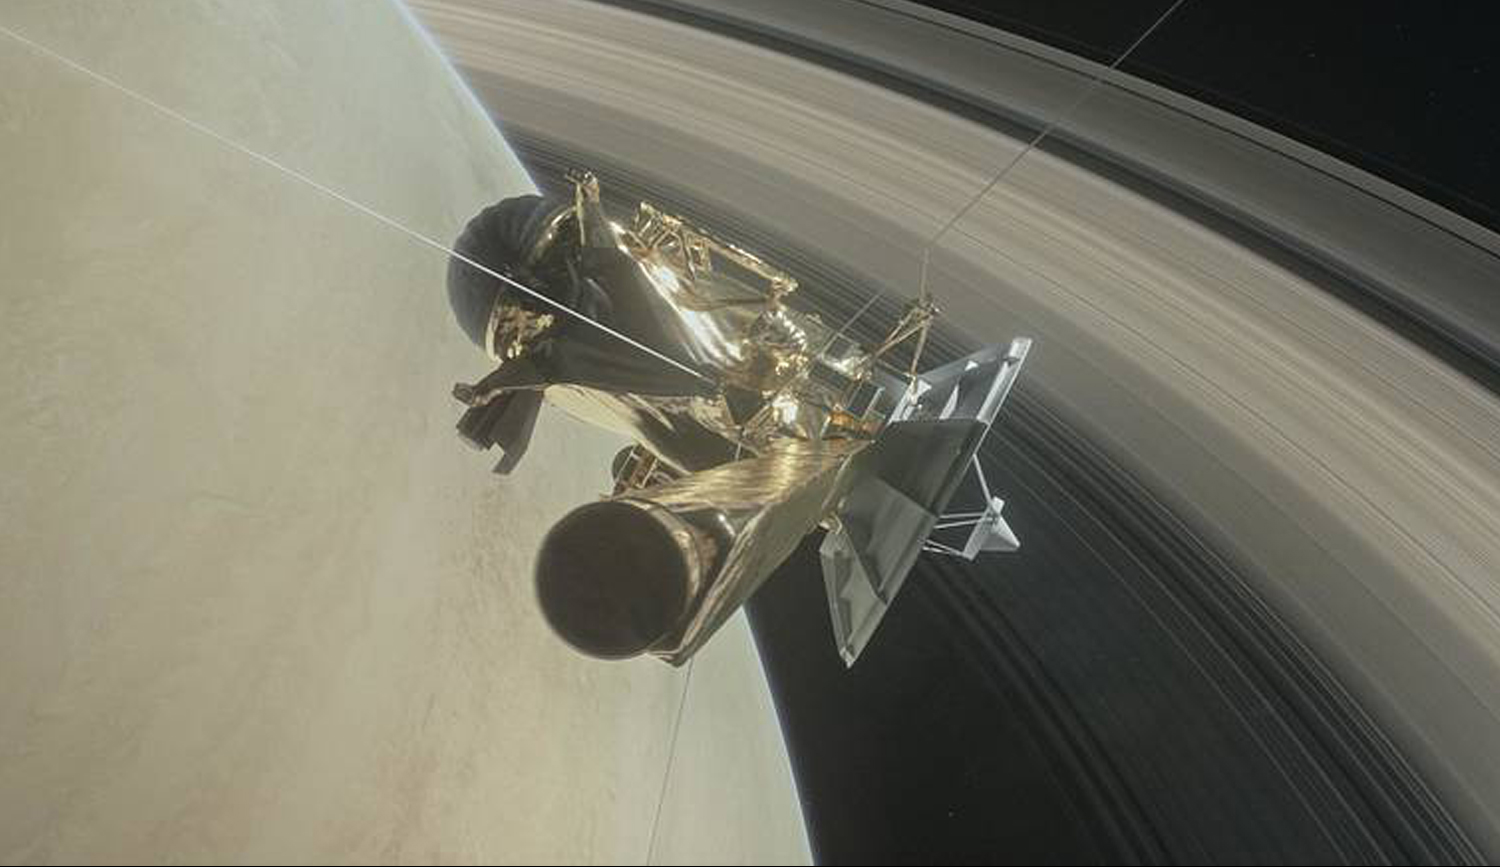 Of planet earth as a point of light between the icy rings of saturn - Illustration Of Cassini Spacecraft S Grand Finale Dive